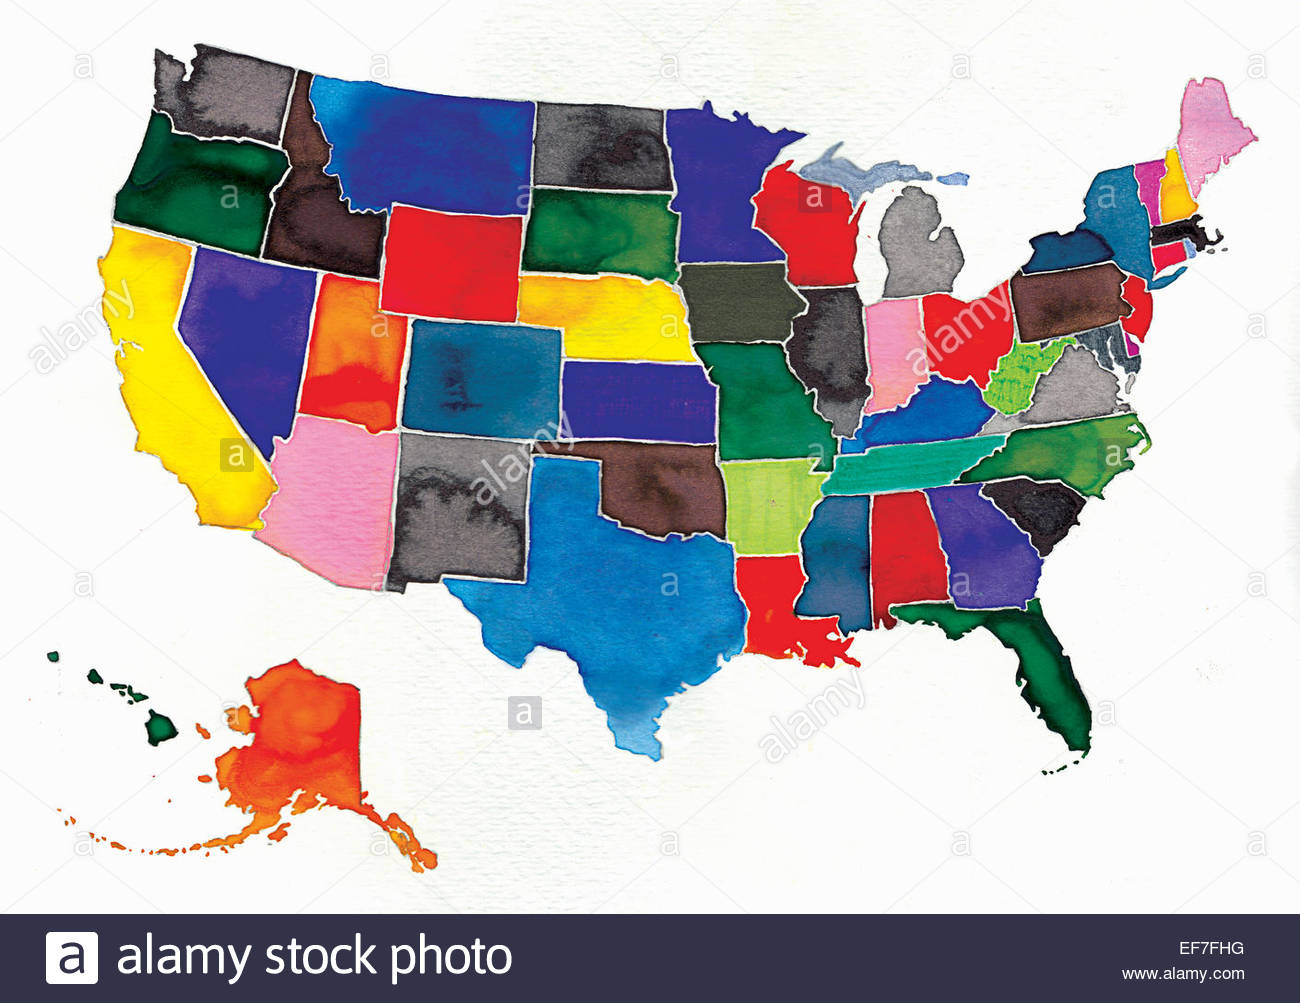 Watercolor Map Of United States And Alaska Stock Photo Royalty - Watercolor us map